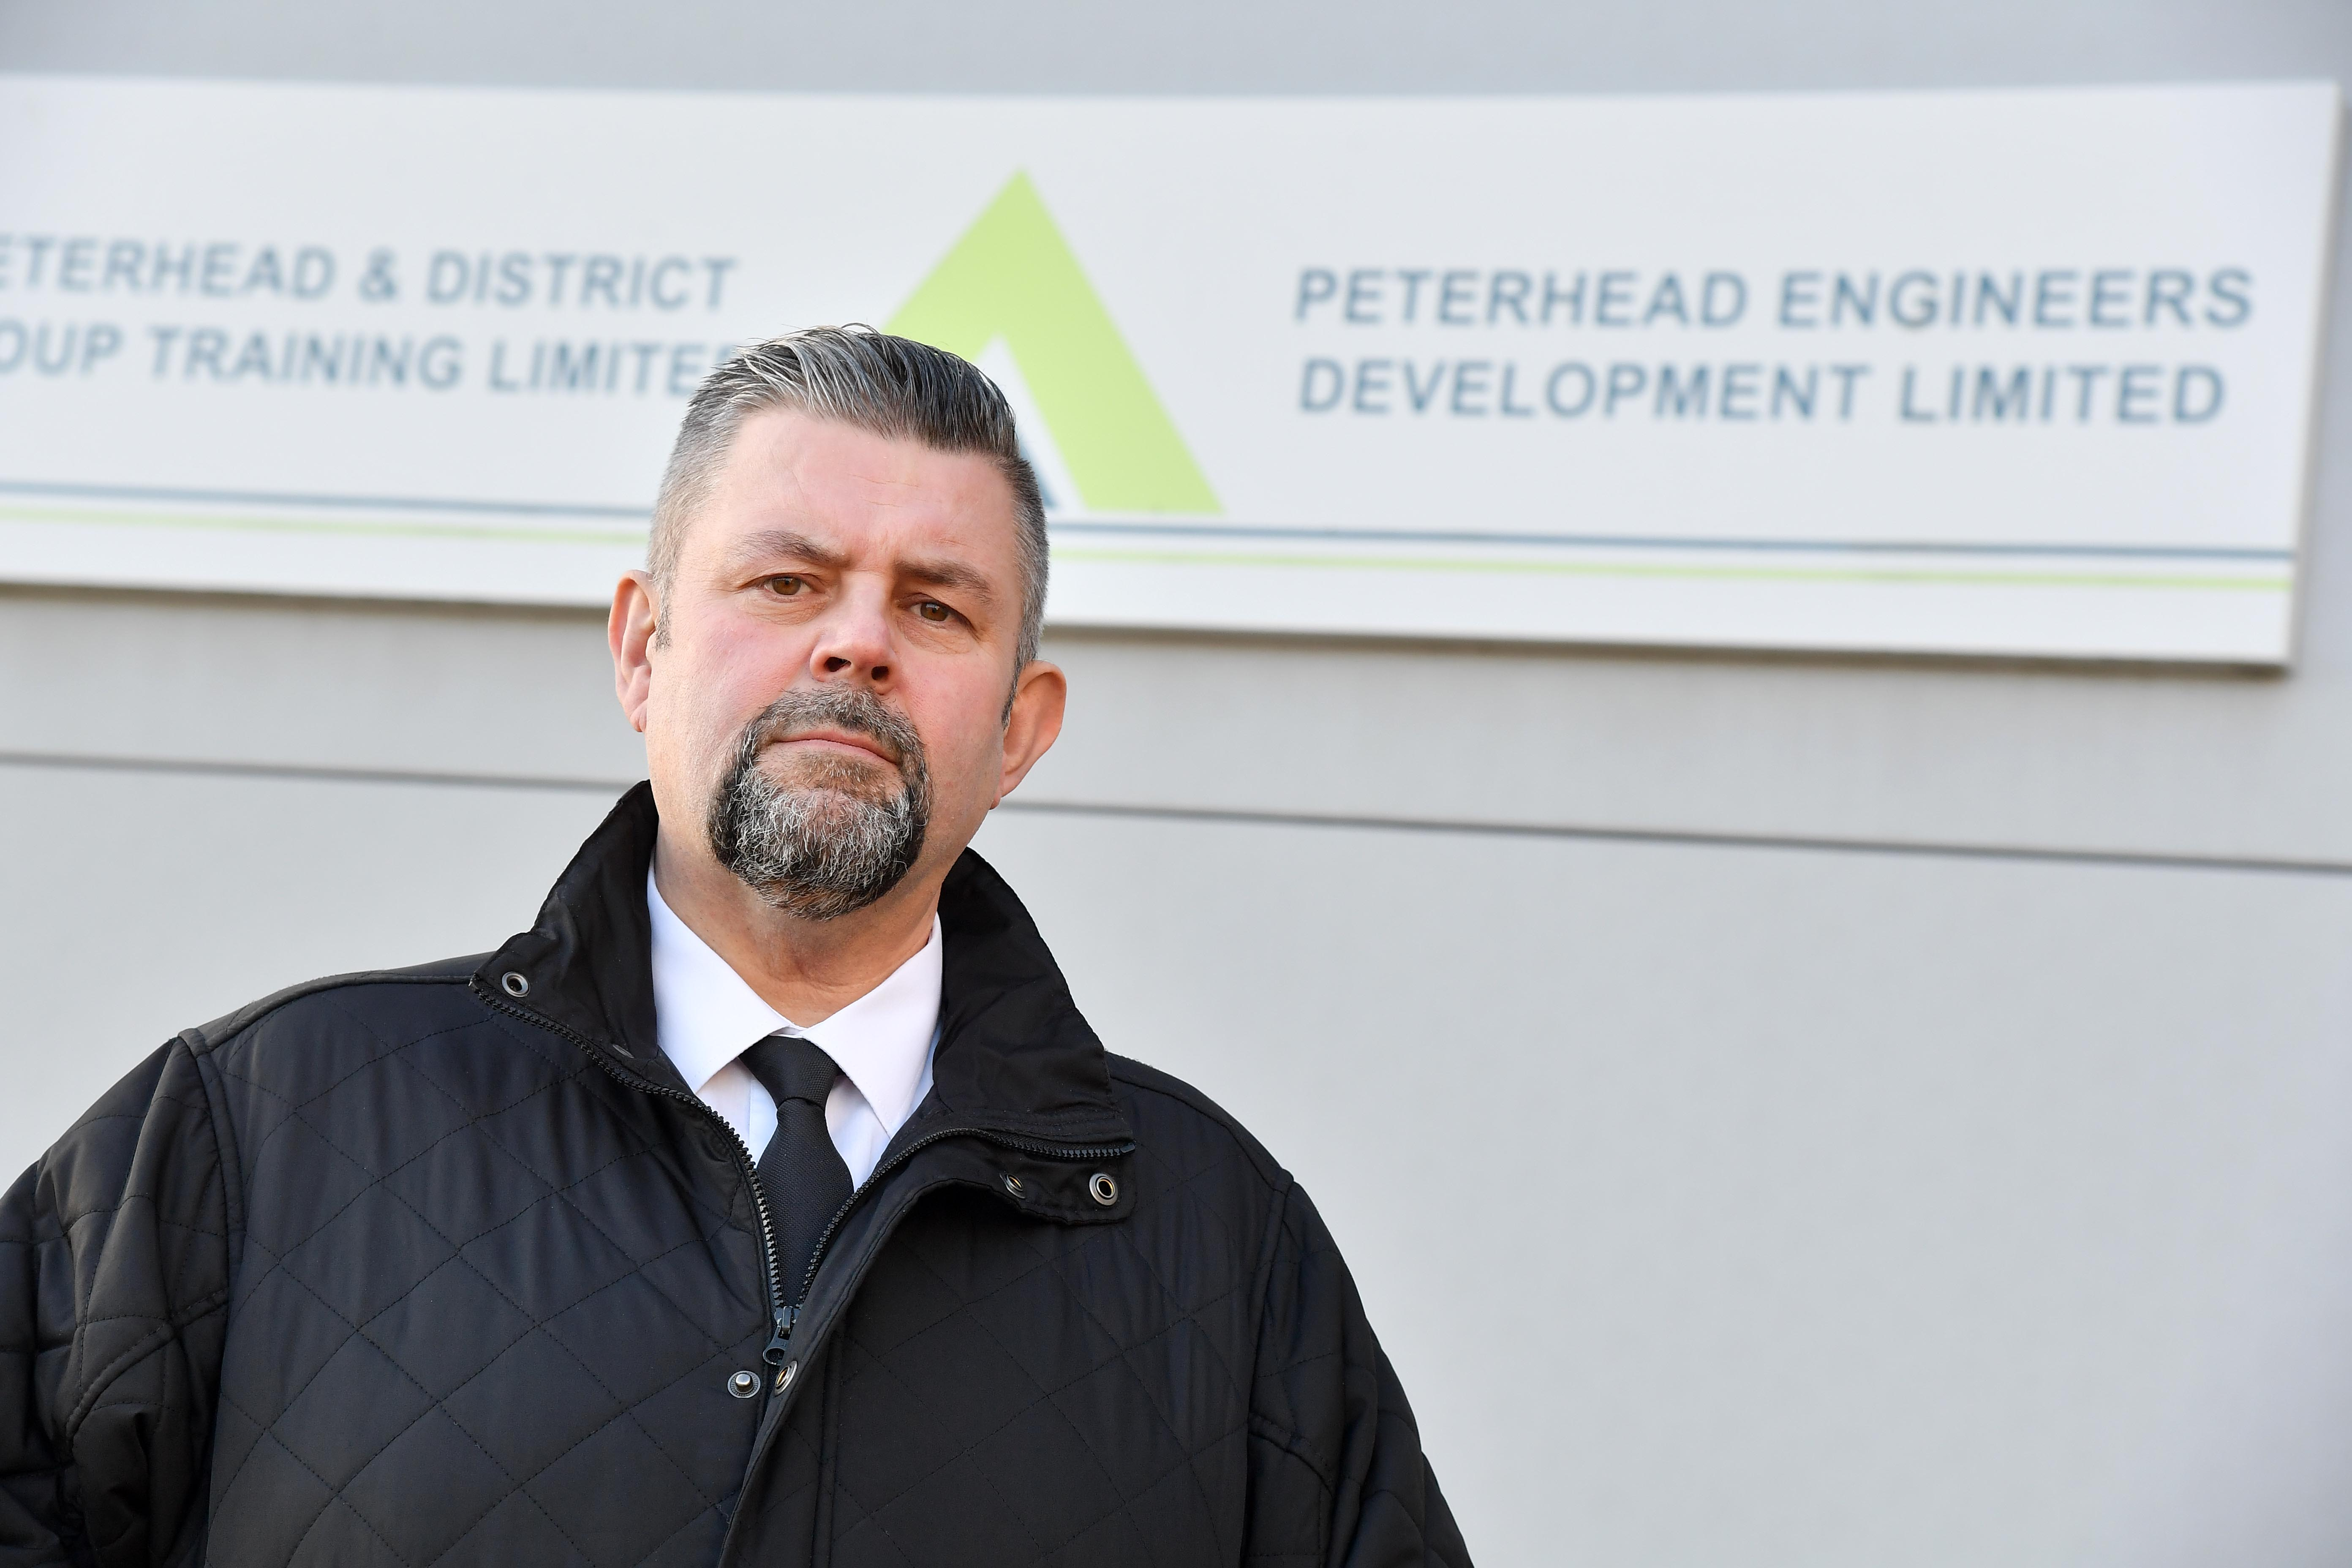 Conrad Ritchie at Peterhead Engineers Development